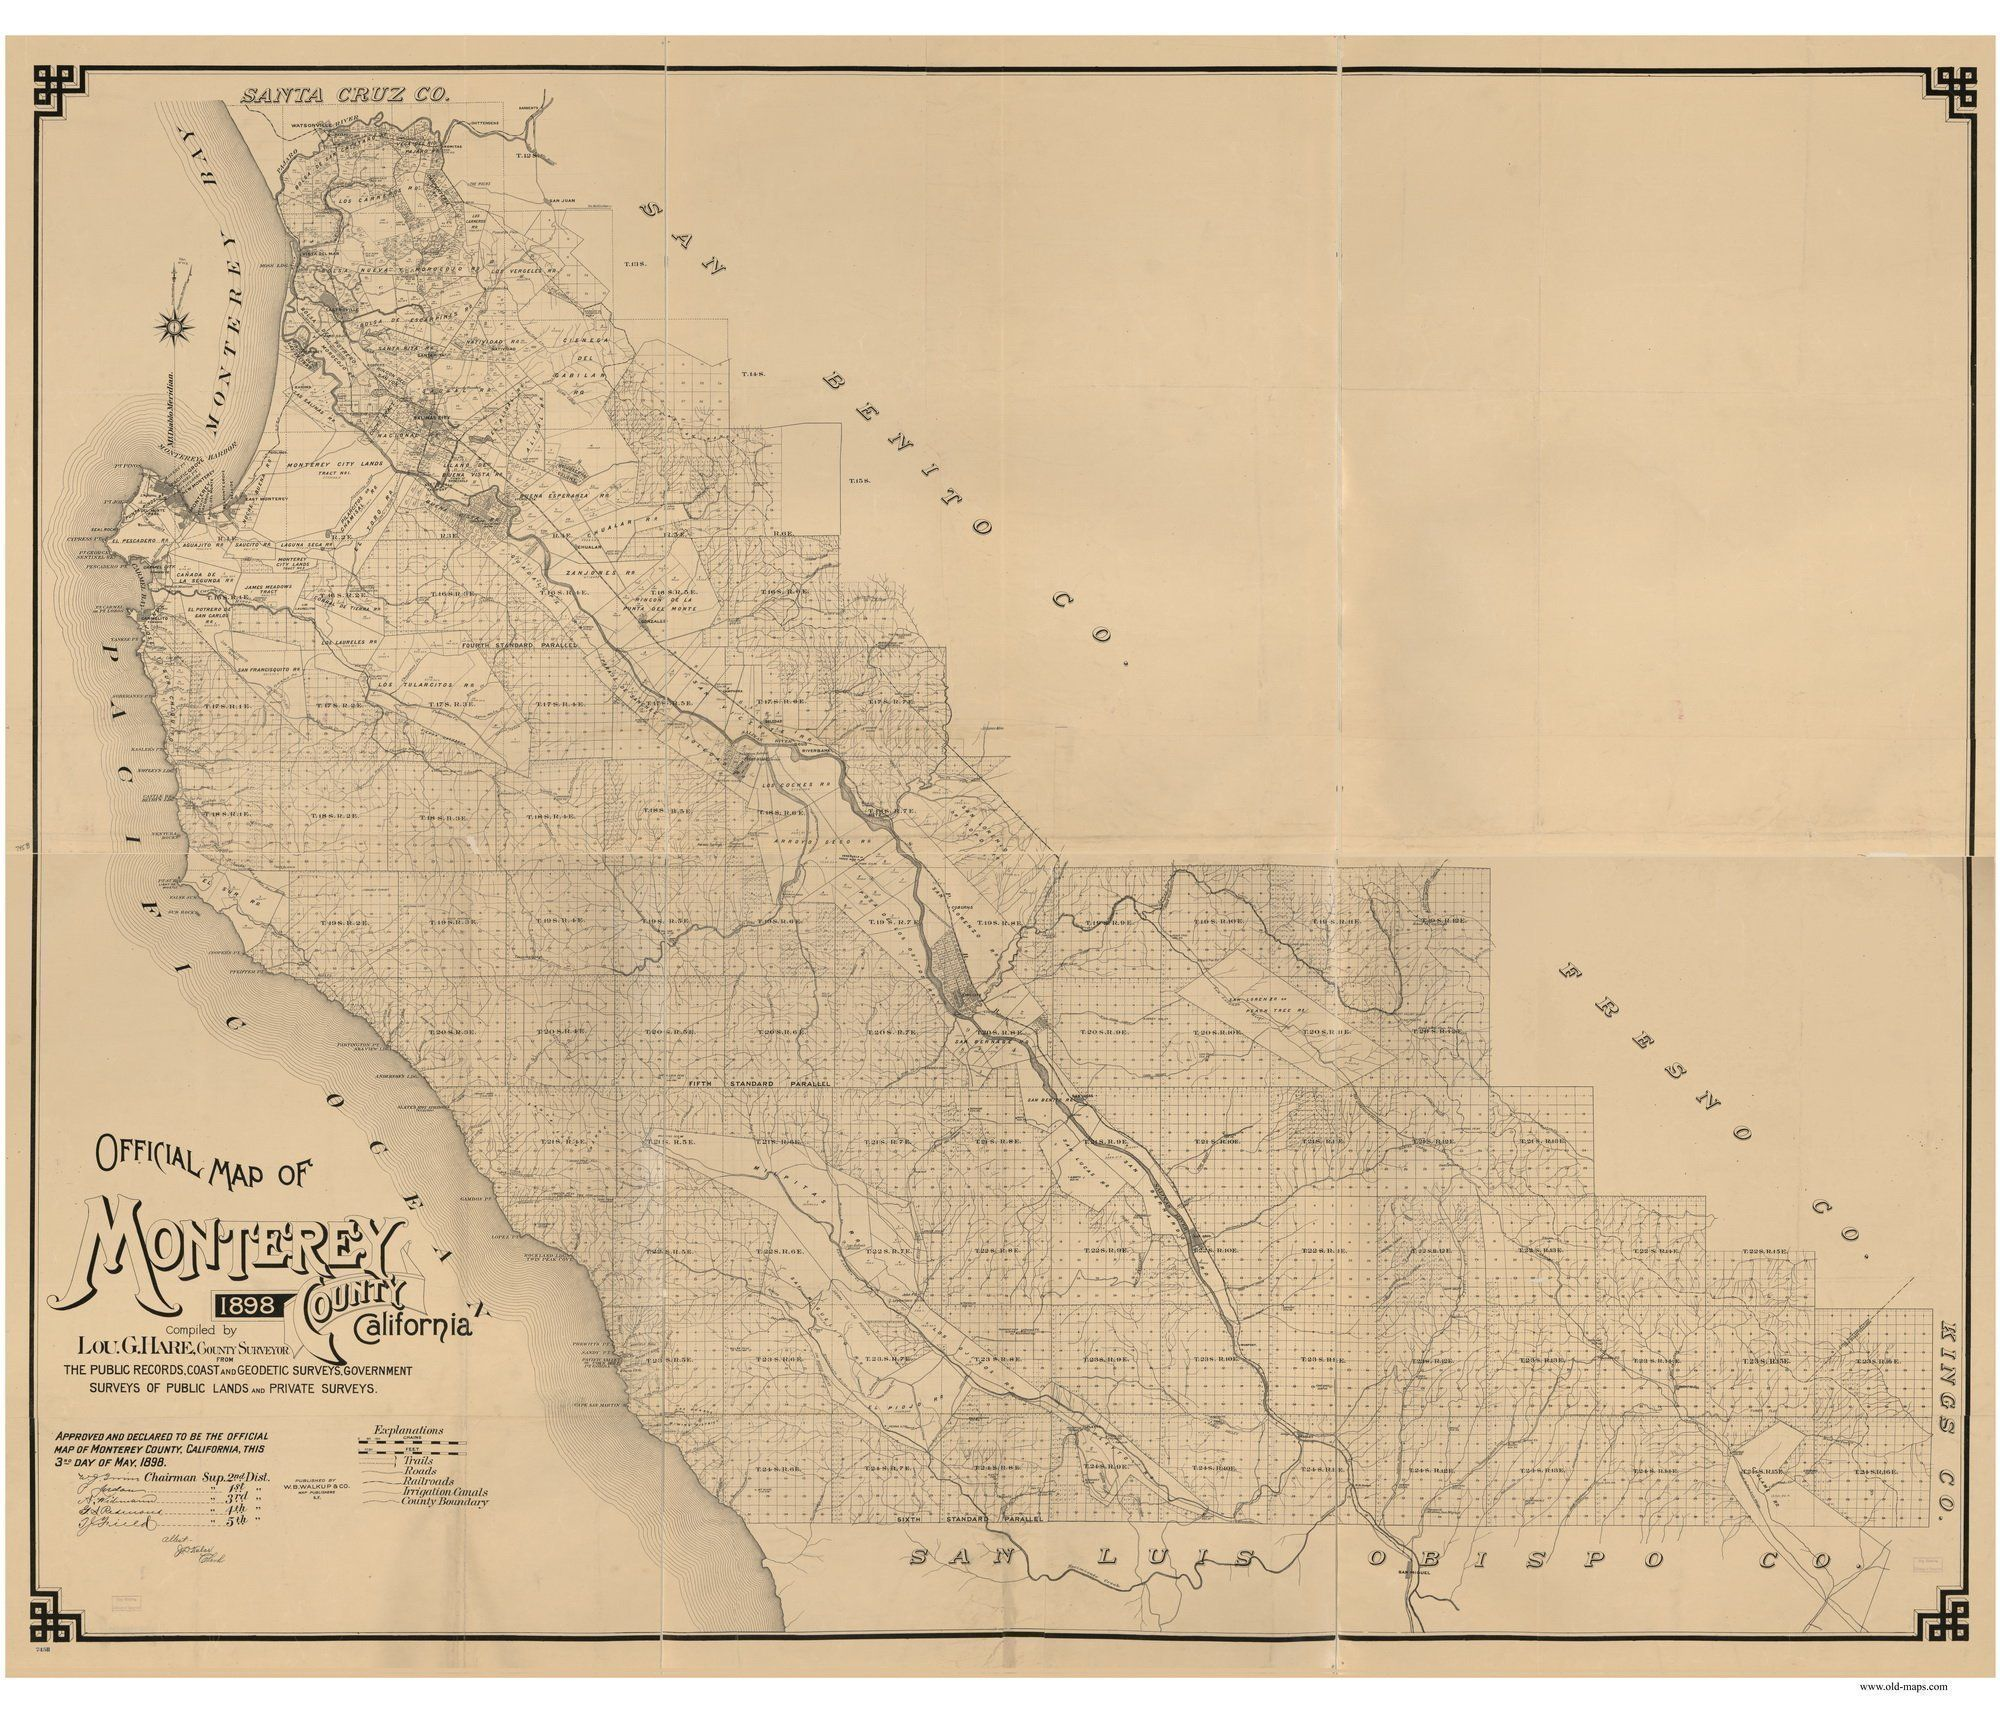 Monterey County California 1898 Wall Map Reprint with Farm Lines